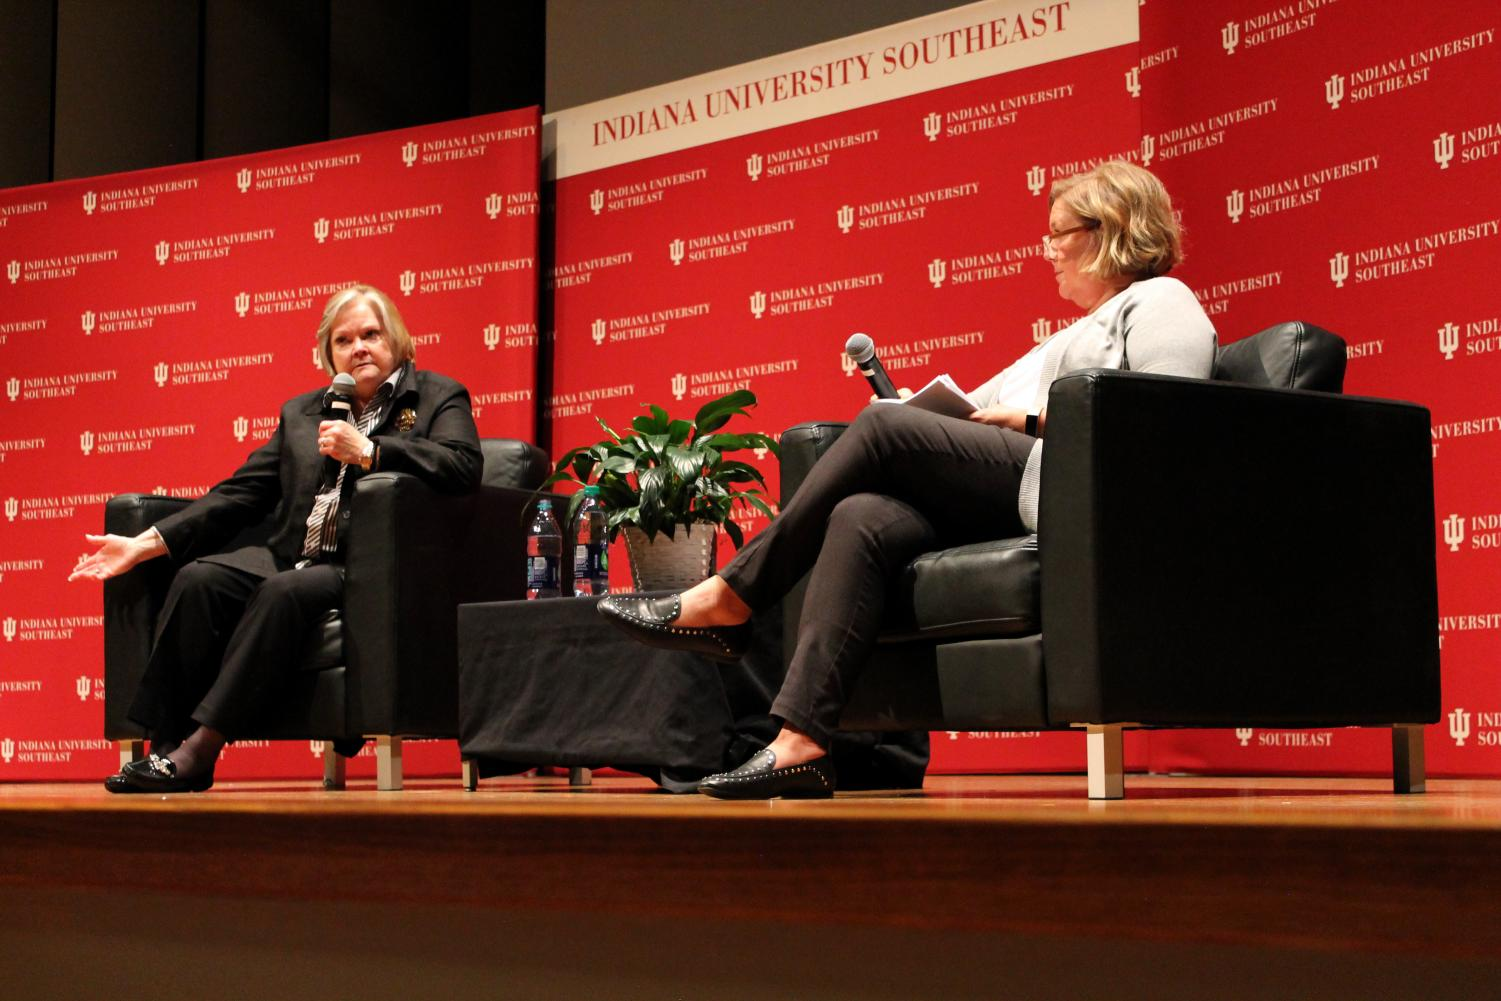 Judy Shepard (left) gestures as she answers a question from an audience member.